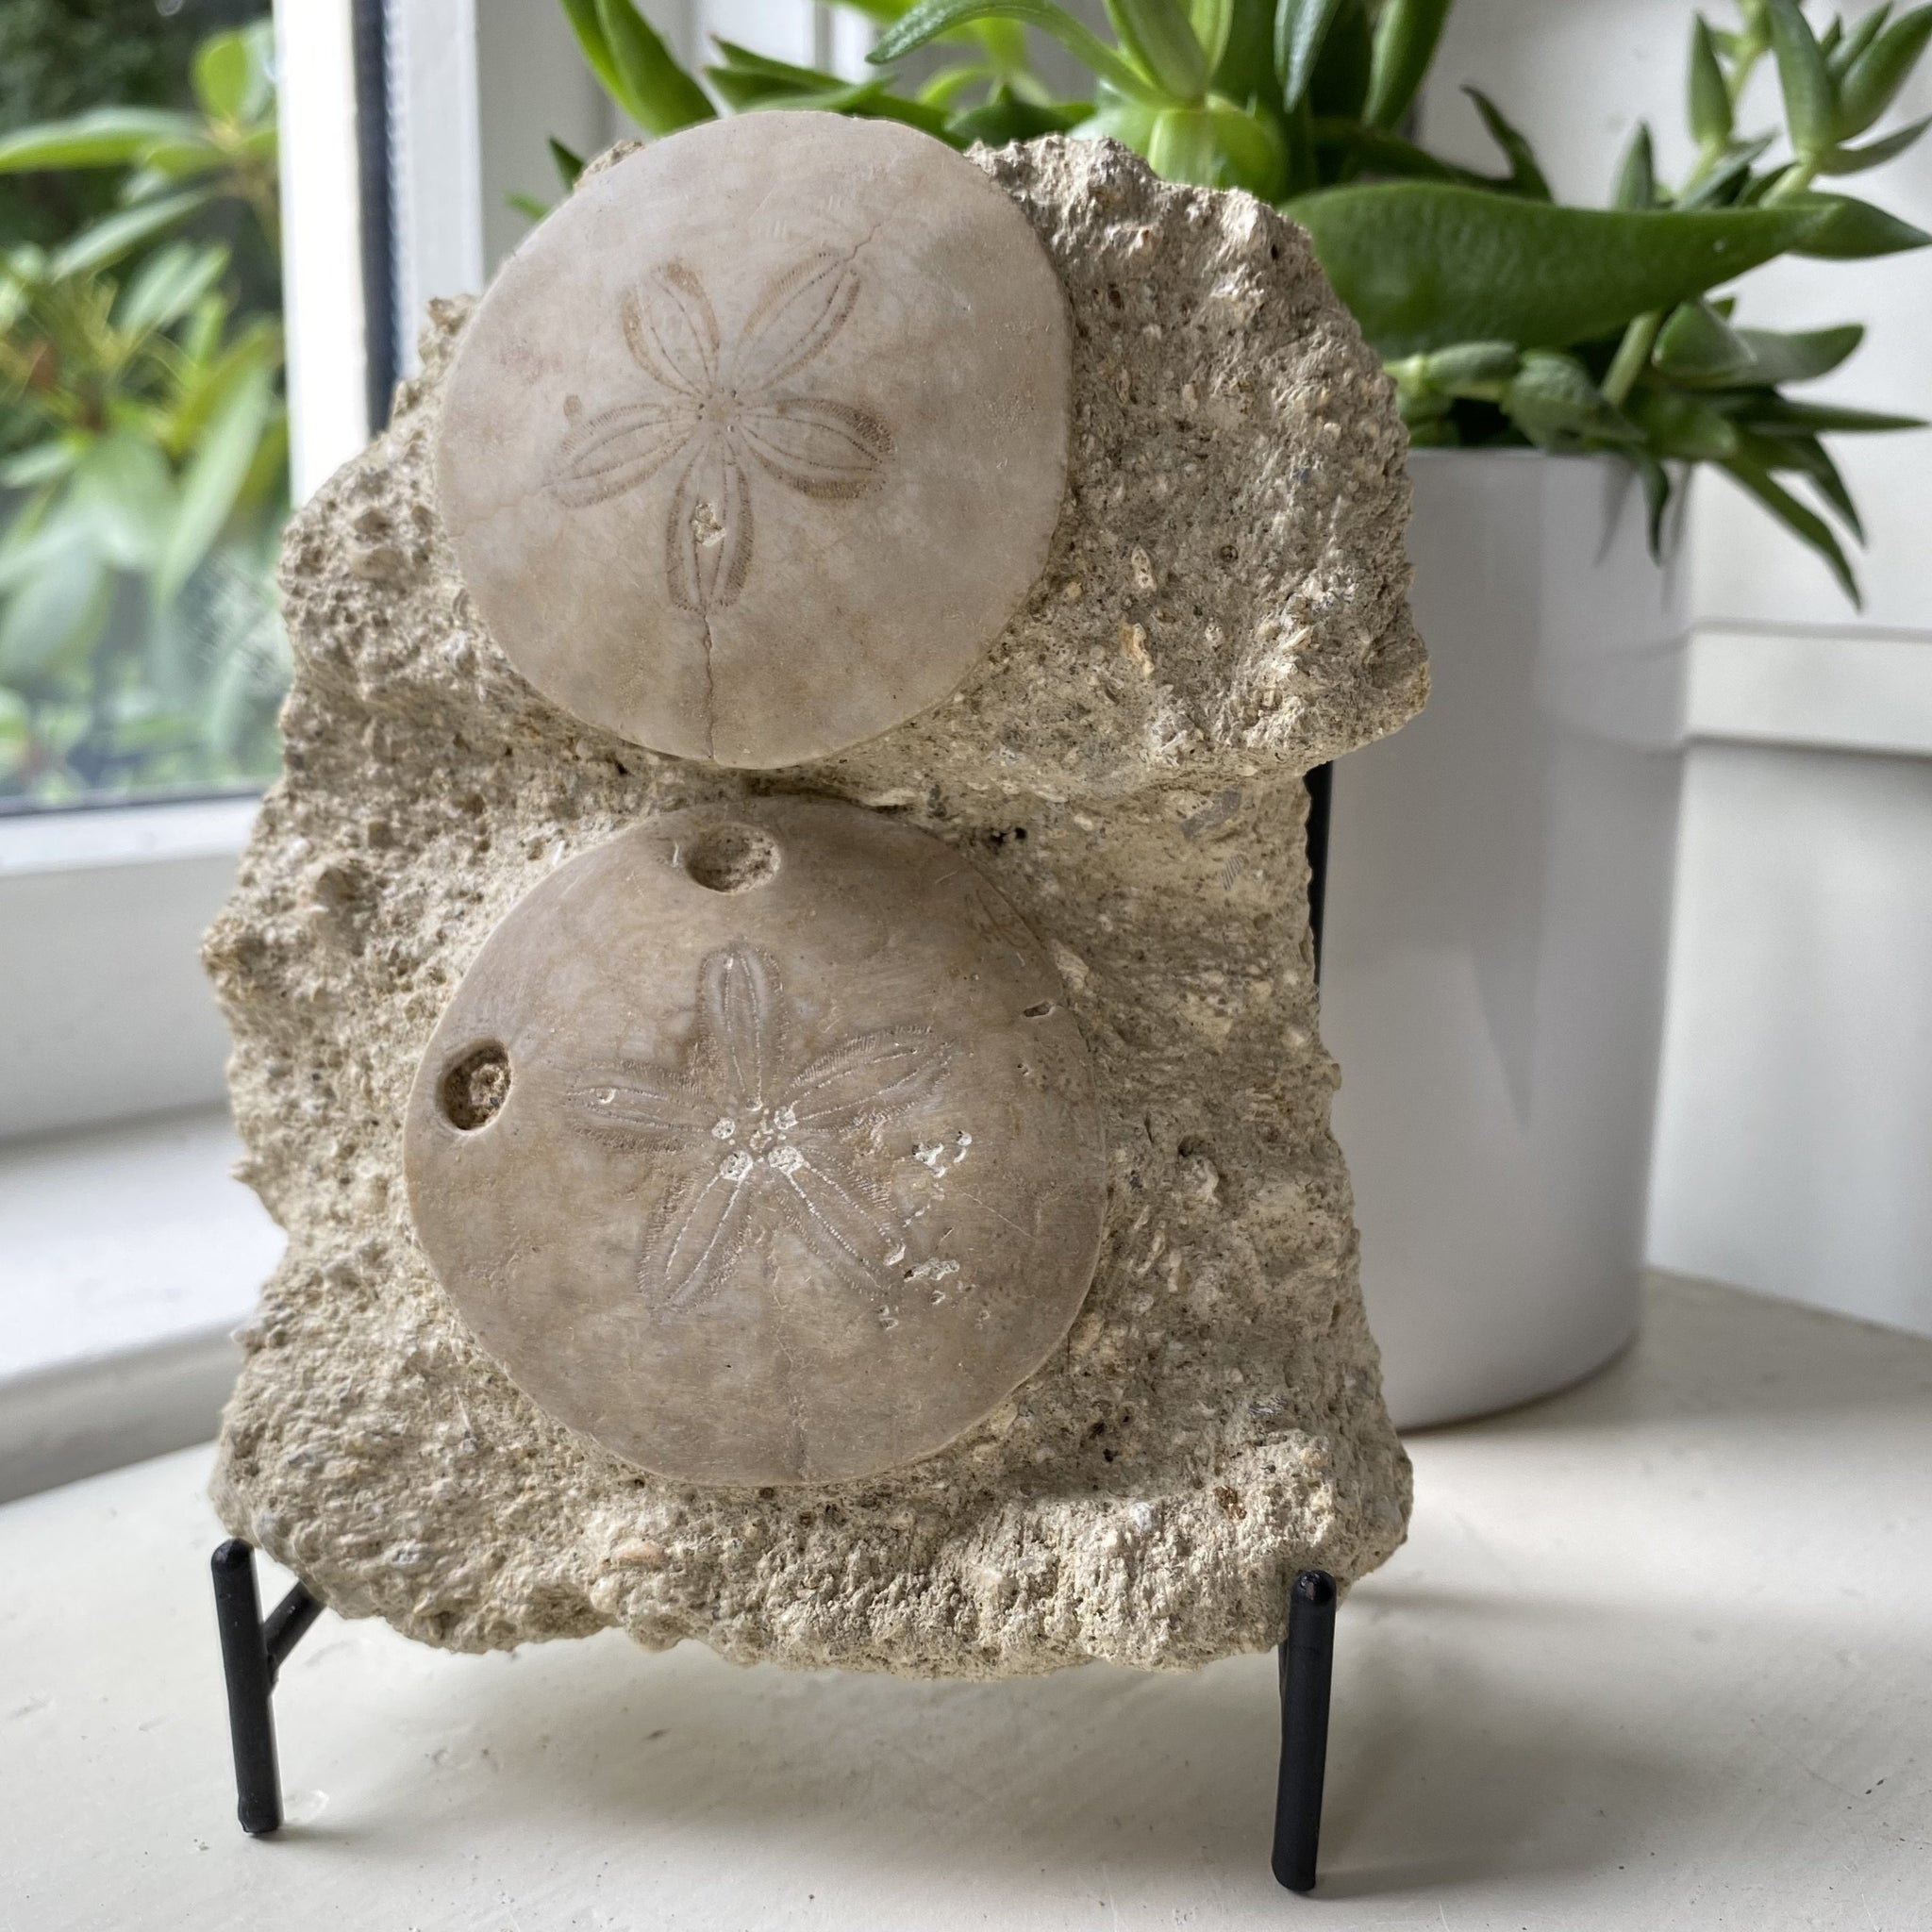 fossil sand dollar with stand